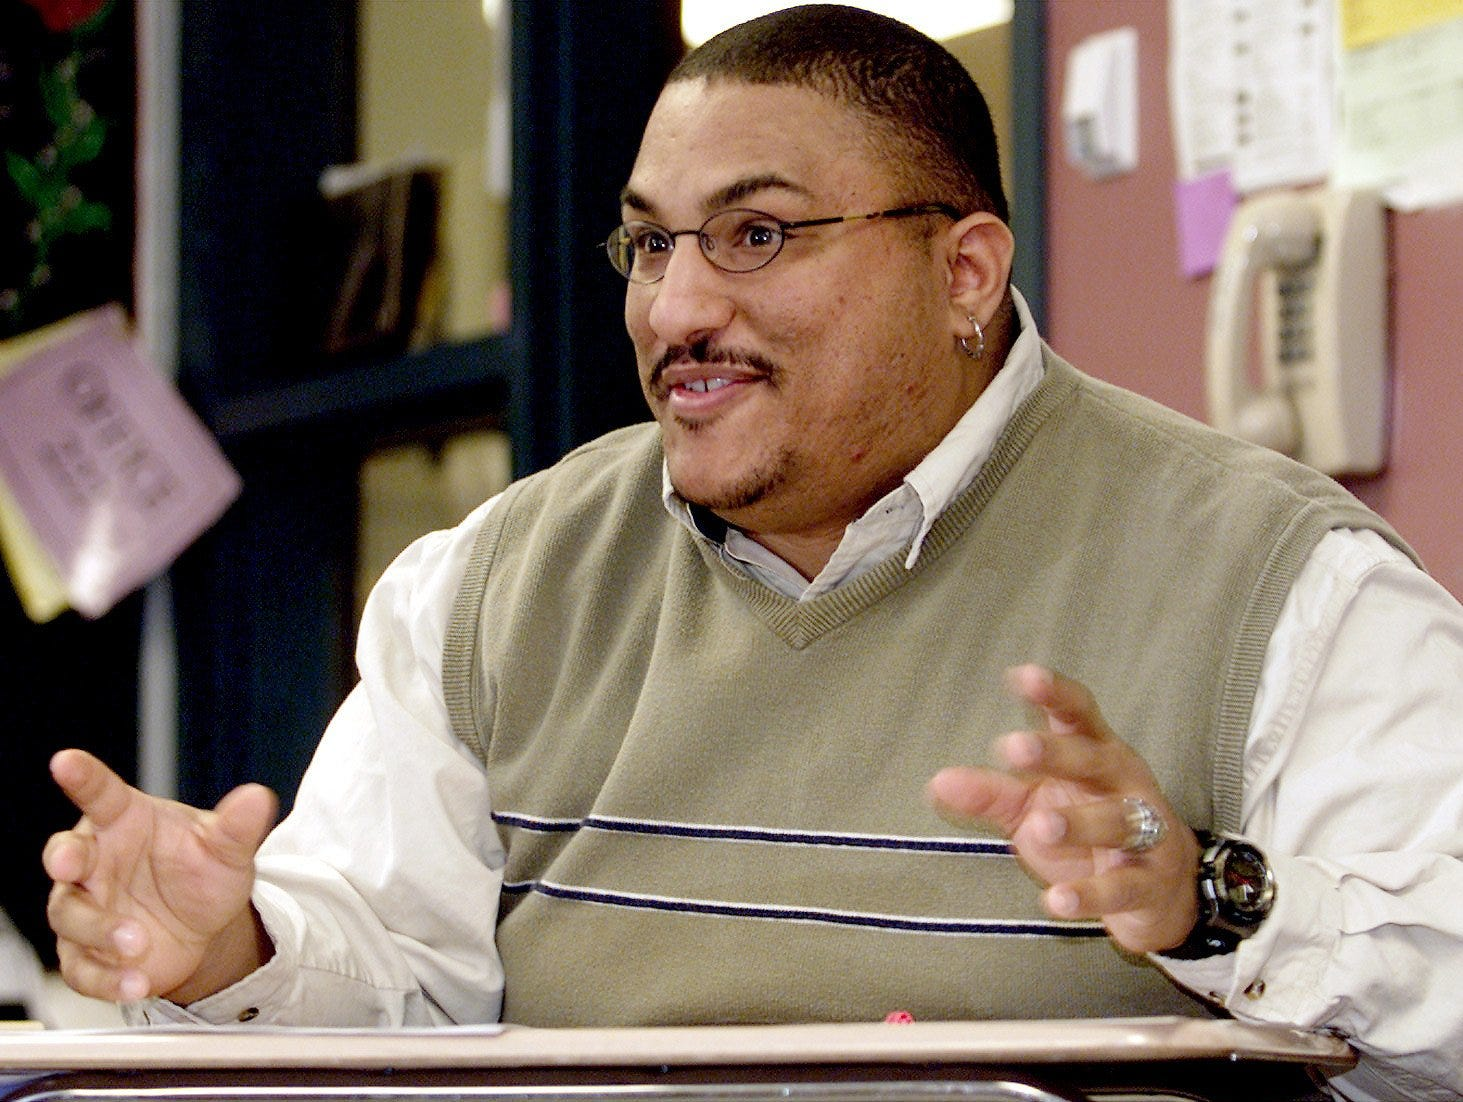 2001: David Perkins, an Ernie Davis Middle School history teacher, leads a class discussion on Thursday morning about Black History Month.